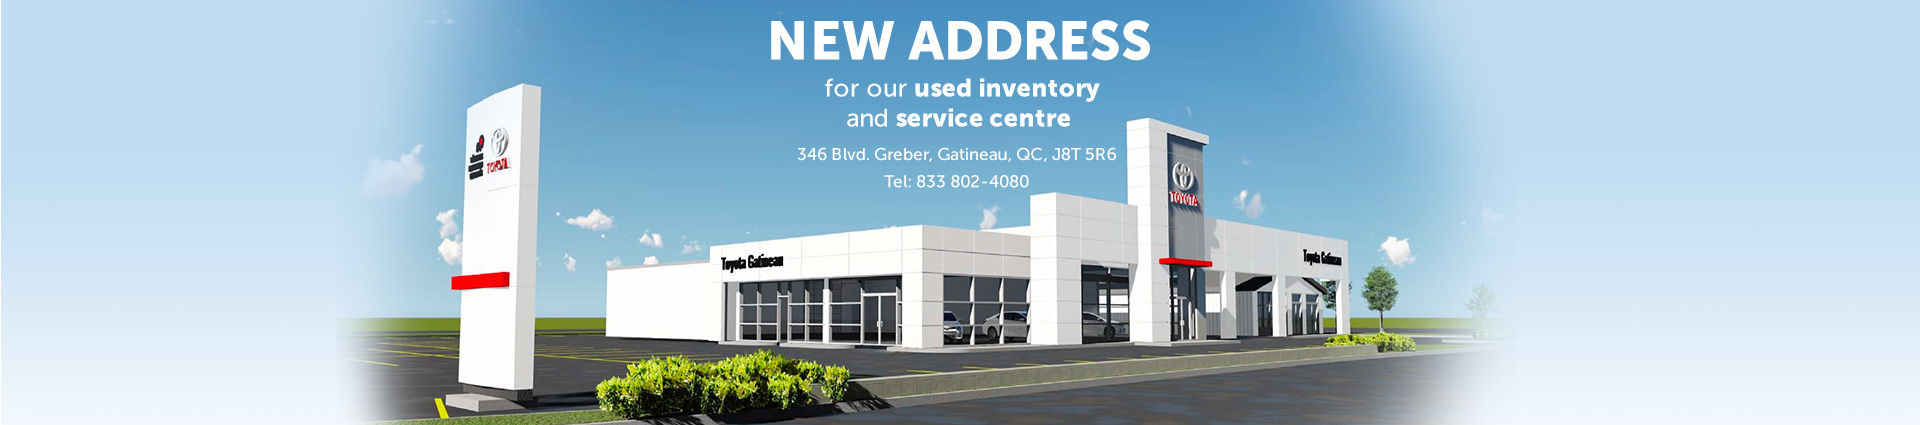 New address - service centre